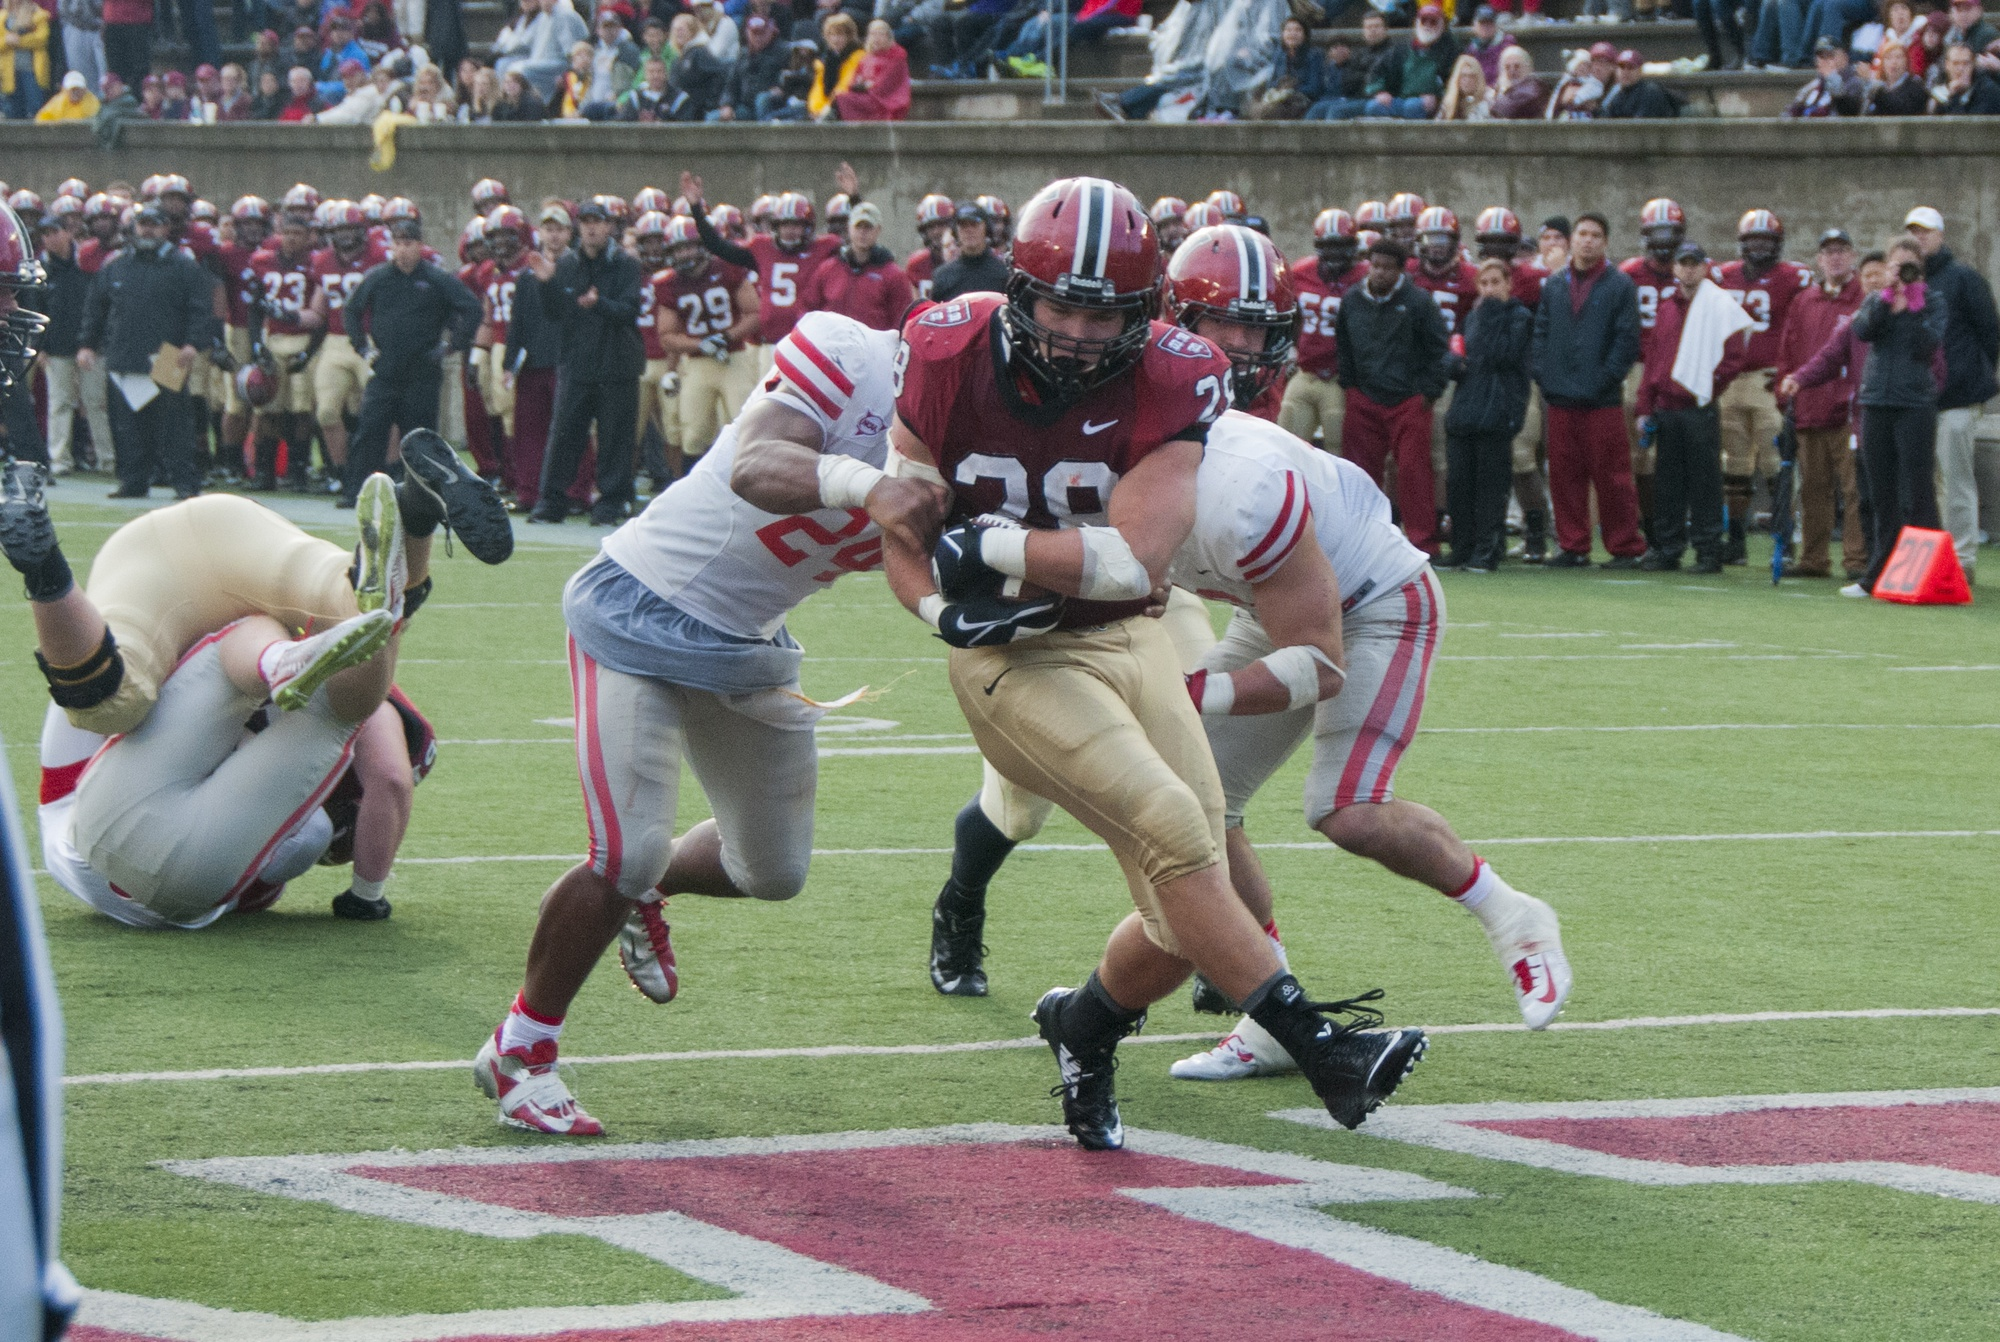 Senior running back Andrew Casten enters the end zone for the game's final touchdown late in the fourth quarter. Harvard rattled off 24 points in the second half to defeat visiting Cornell.